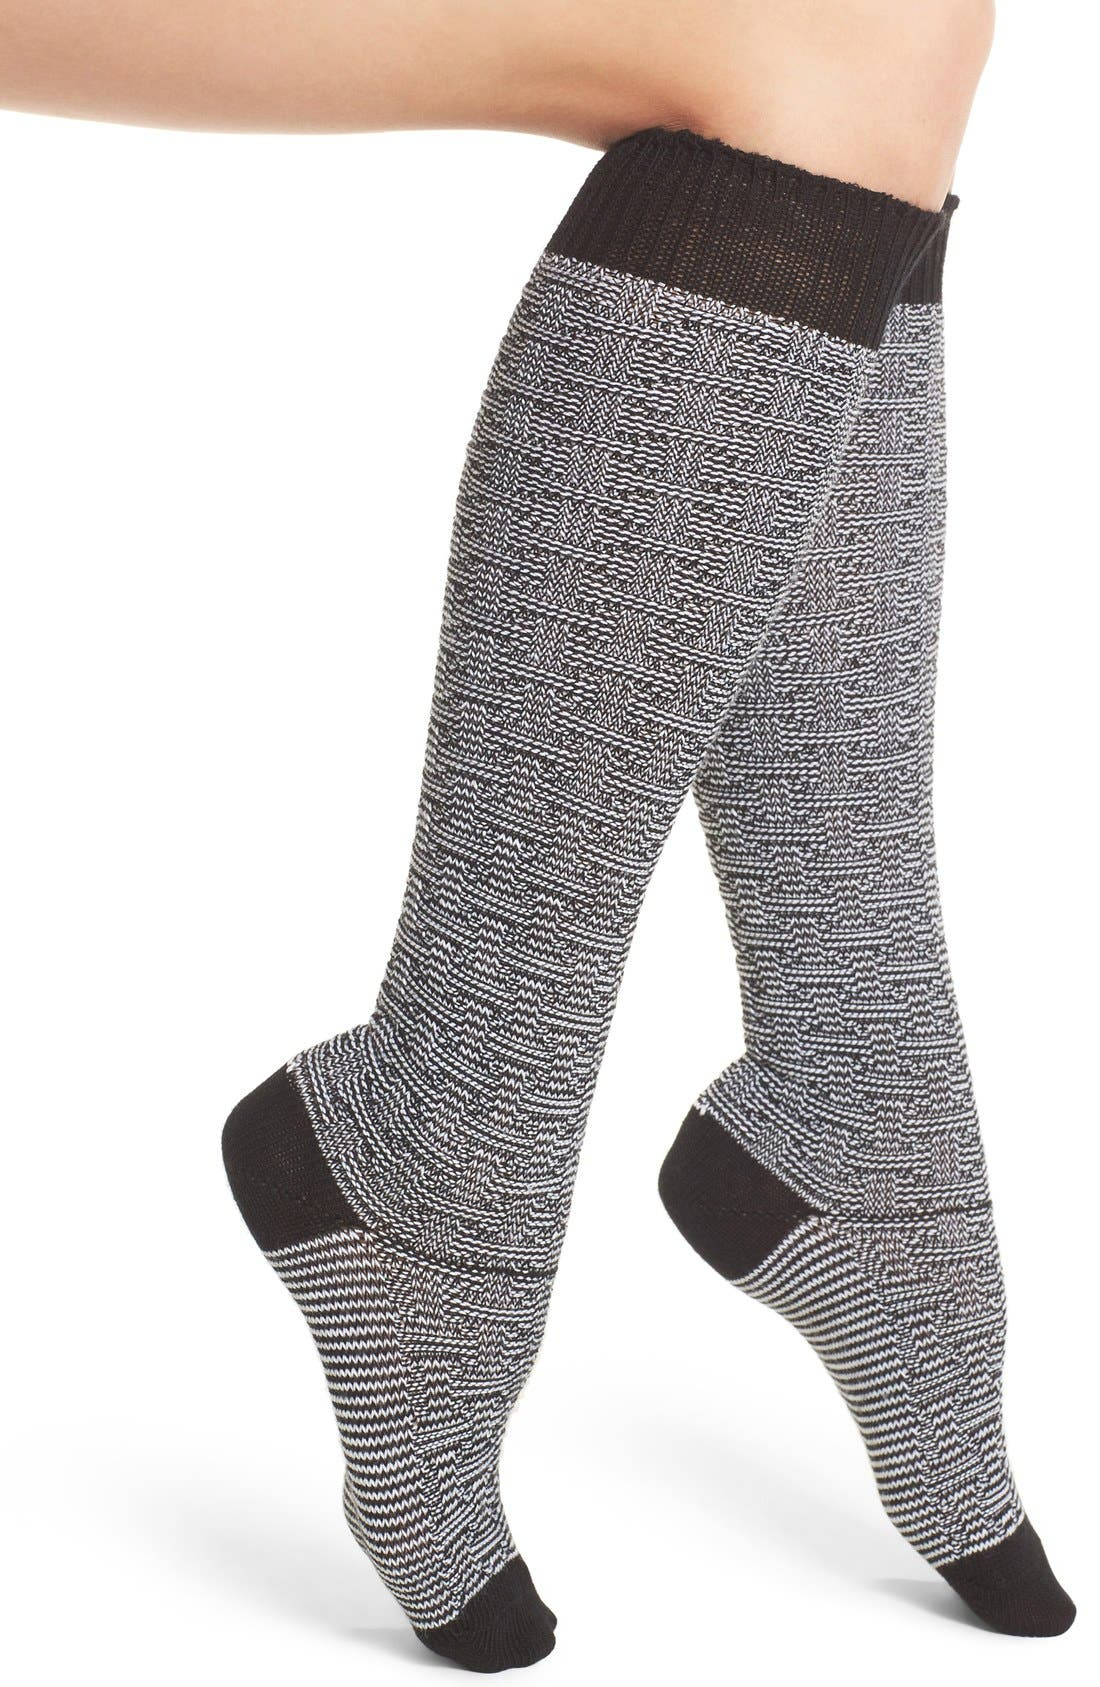 Ryn Knee High Socks,                         Main,                         color, 001